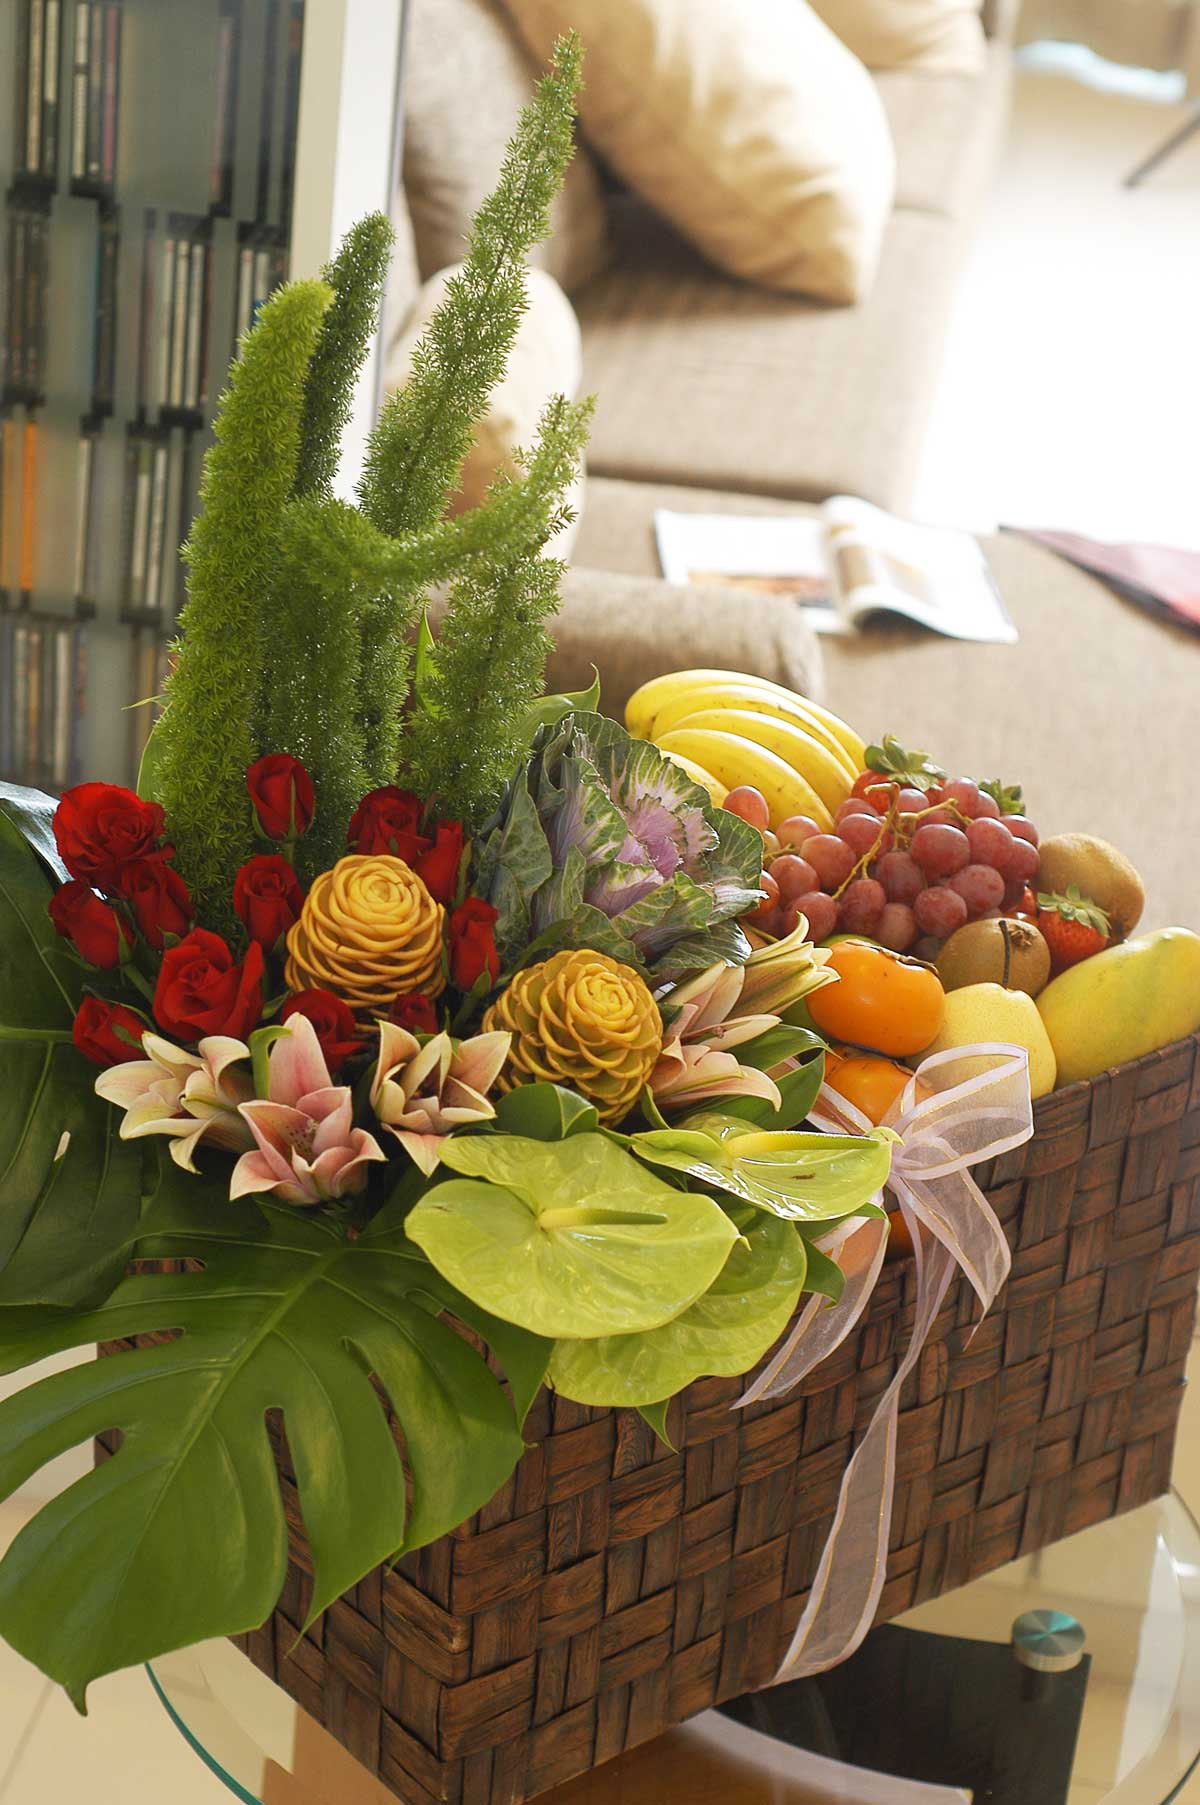 Festive Fruit and Flowers | Hari Raya Hampers & Gift Set | Eska Creative Gifting